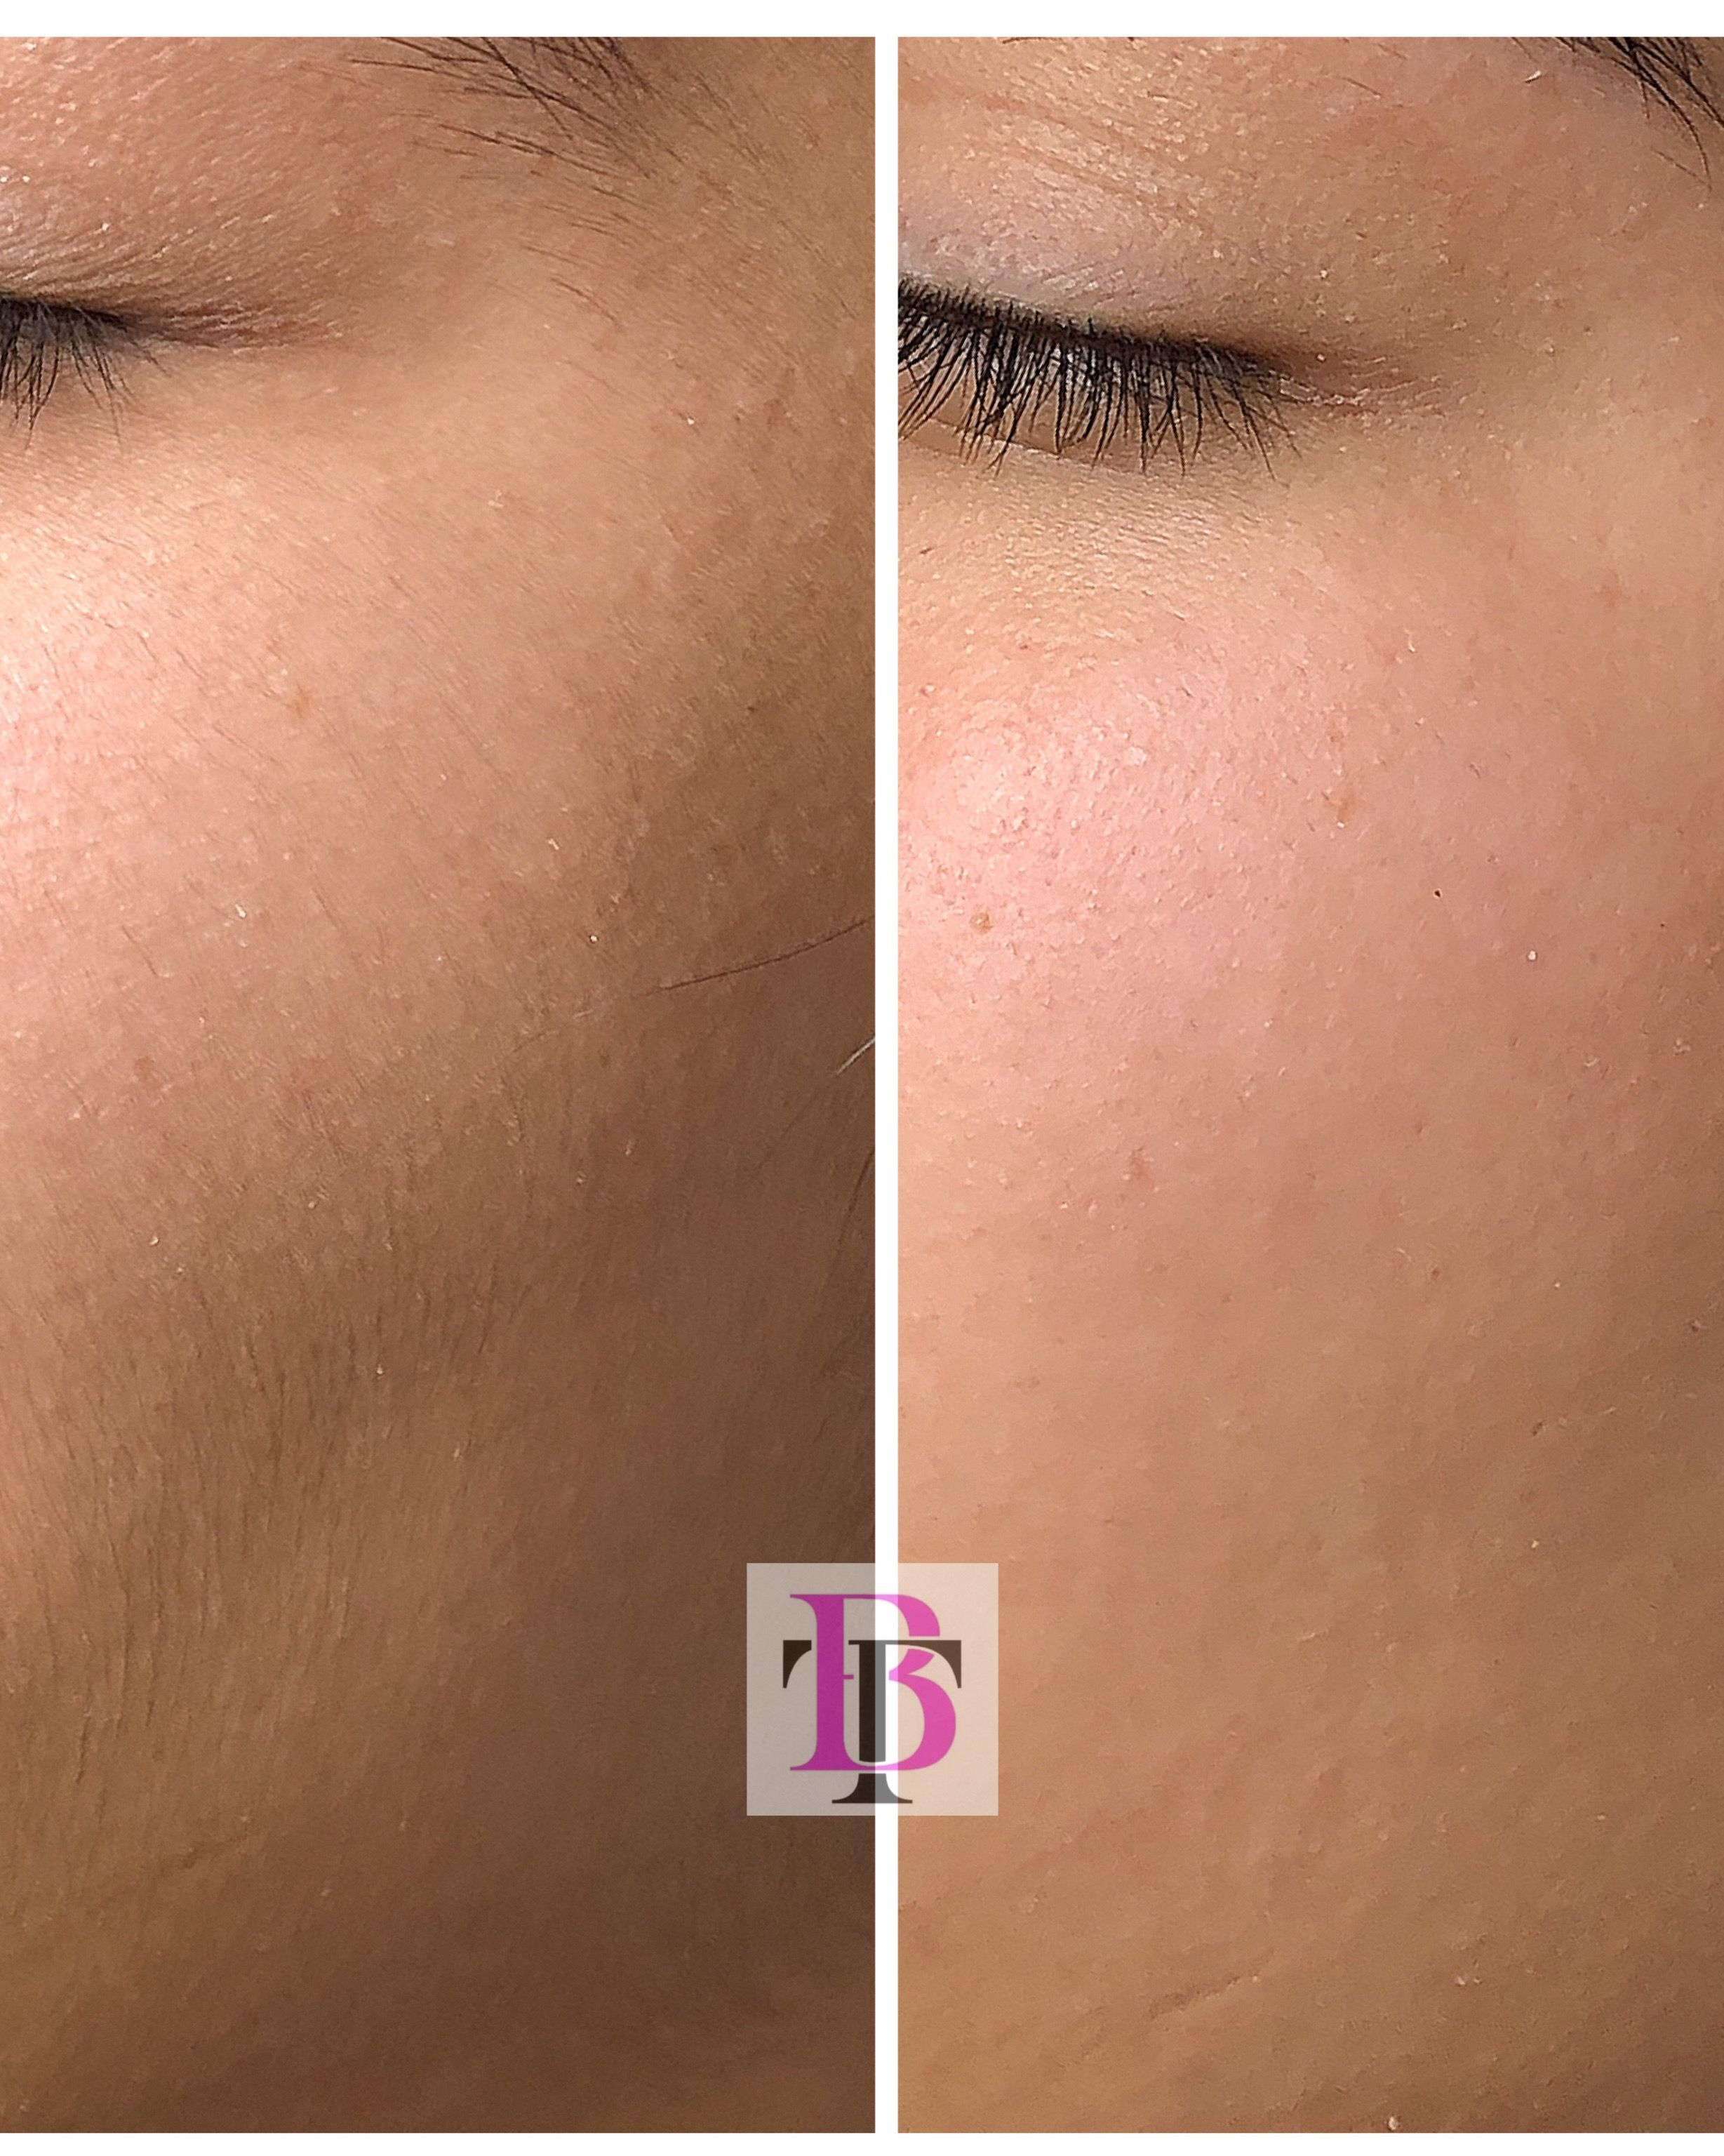 Dermaplaning makes a huge difference zoom in to see